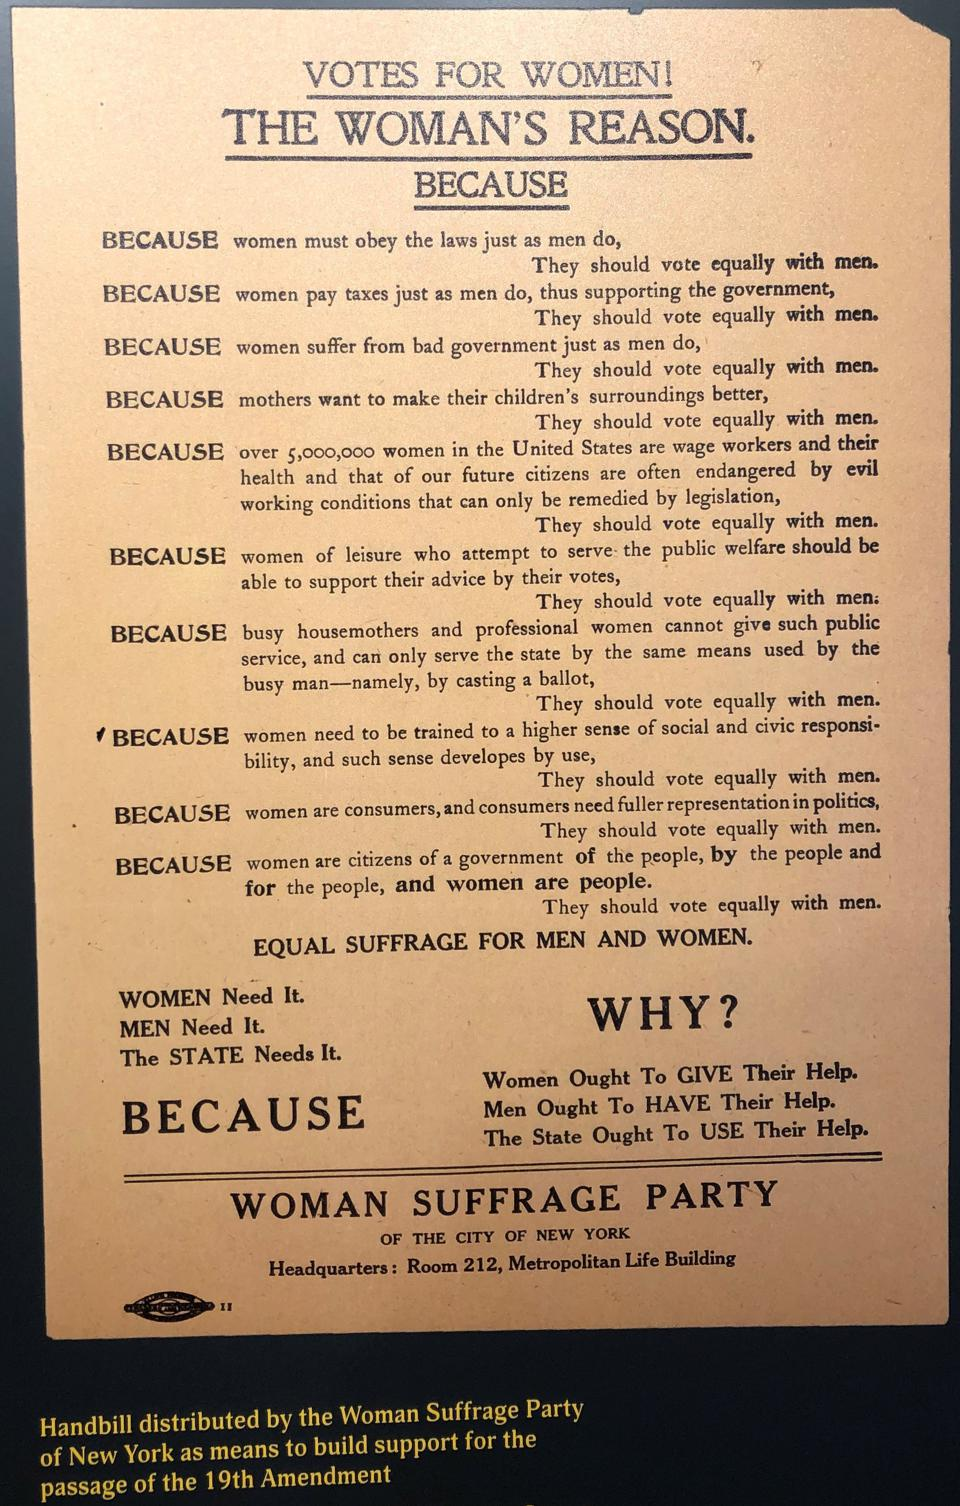 Display of handbill about why women need the right to vote, at Lucy Burns Museum